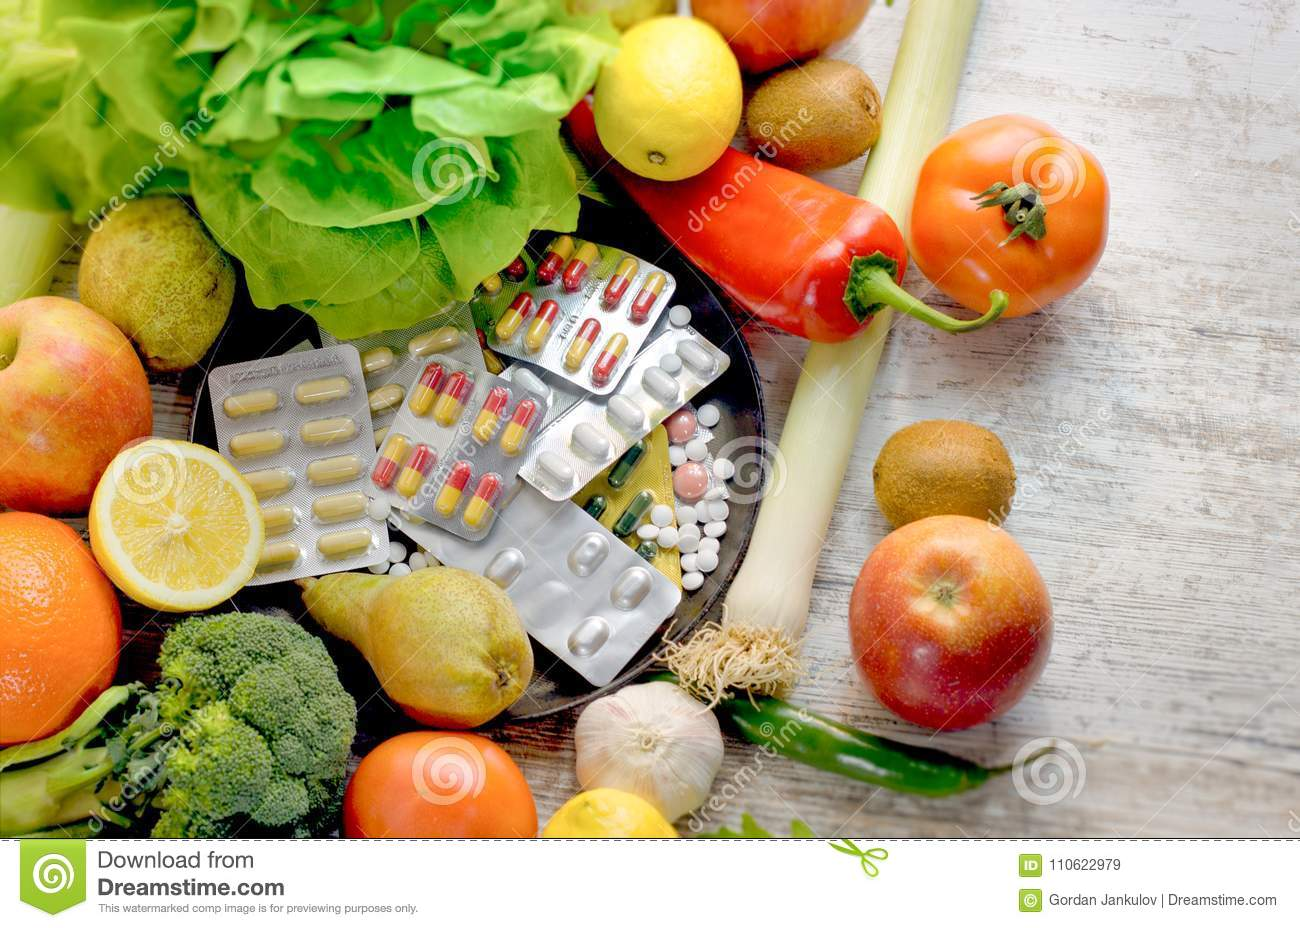 Healthy eating - healthy food, eating organic fruit and vegetable and nutrition supplement